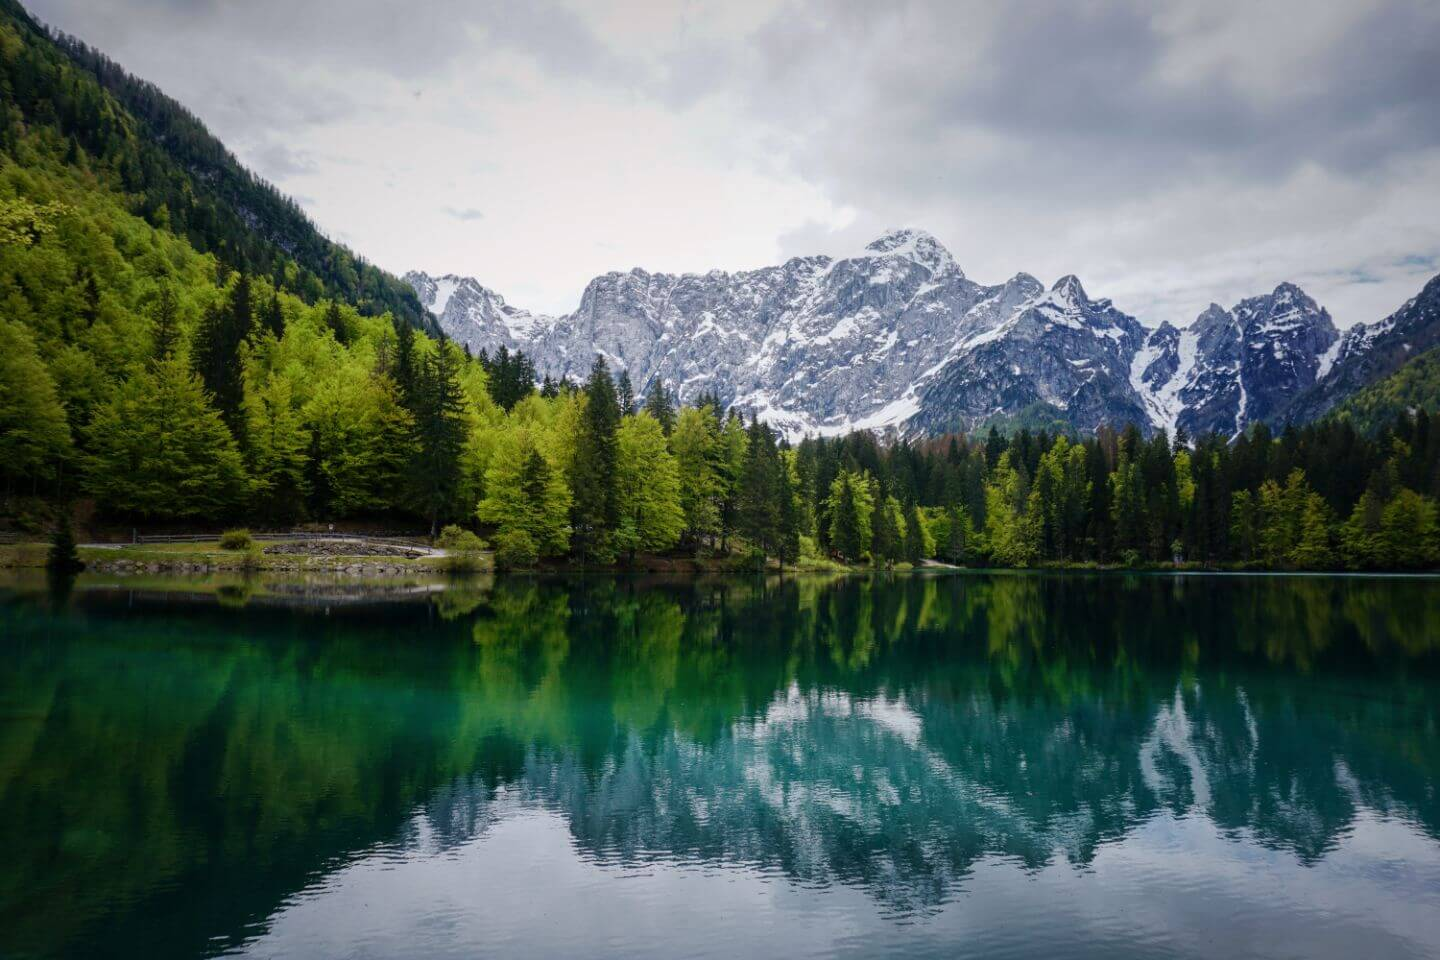 Lower Fusine Lake, Laghi di Fusine, Italy - How to visit the Fusine Lakes in Northern Italy